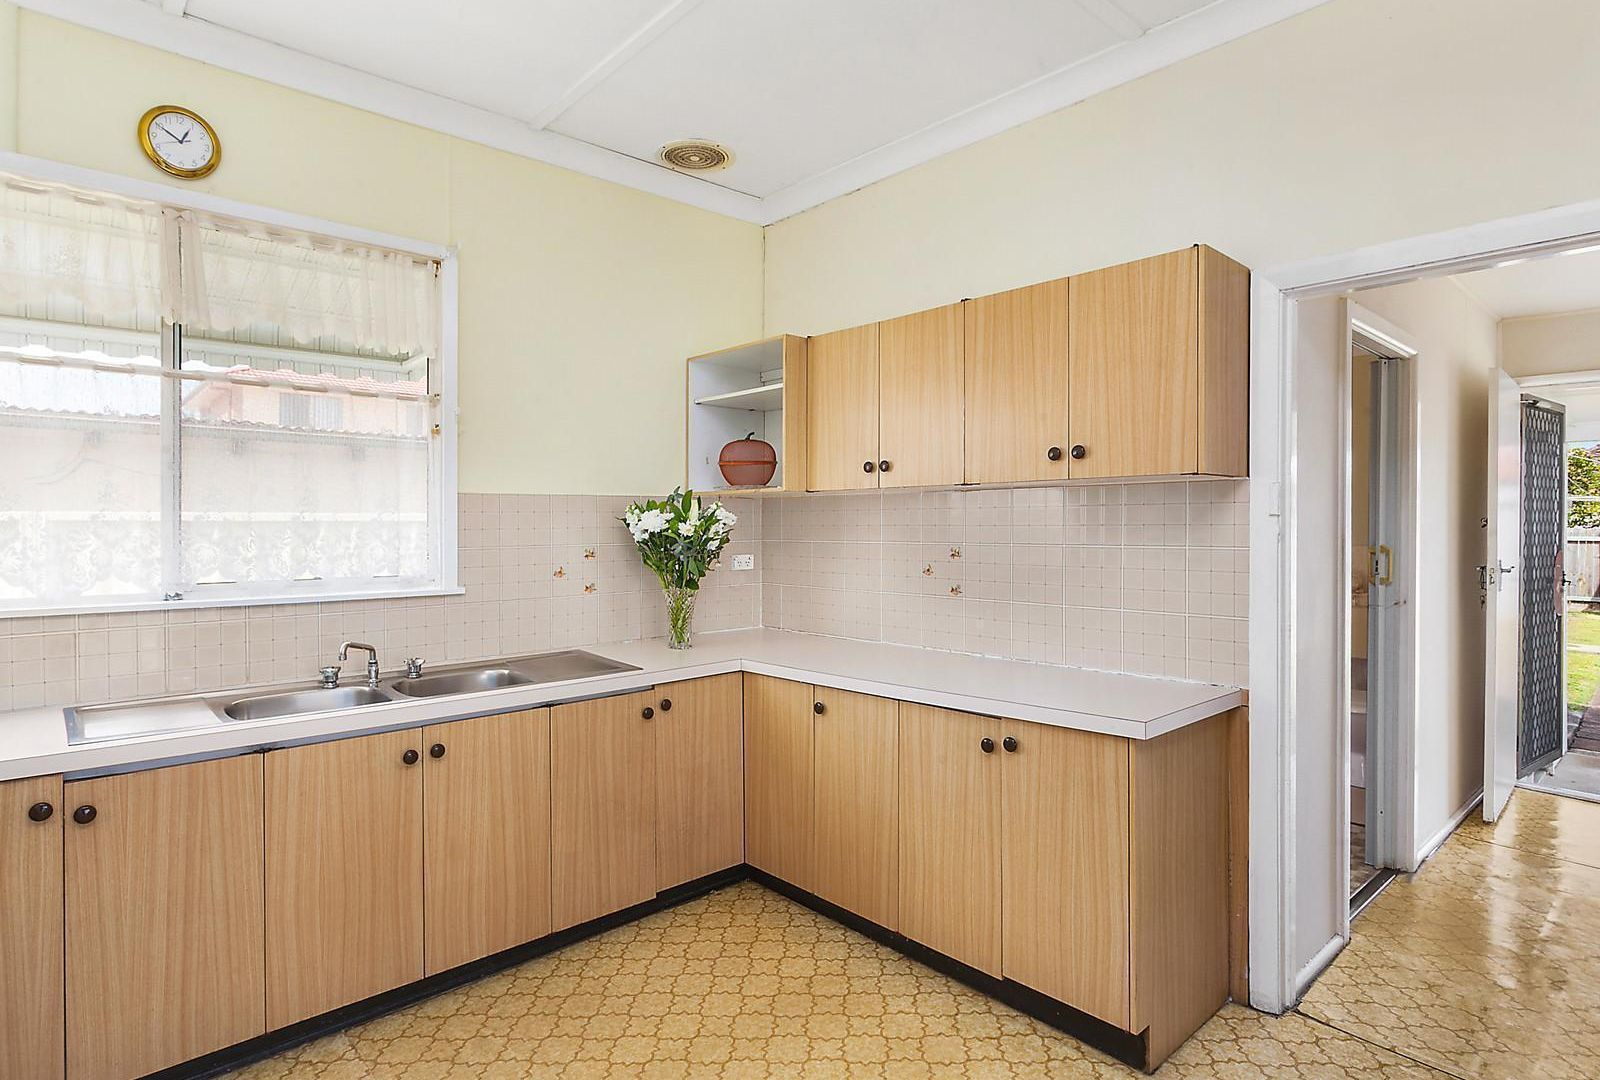 63 Pacific Street, Long Jetty NSW 2261, Image 2